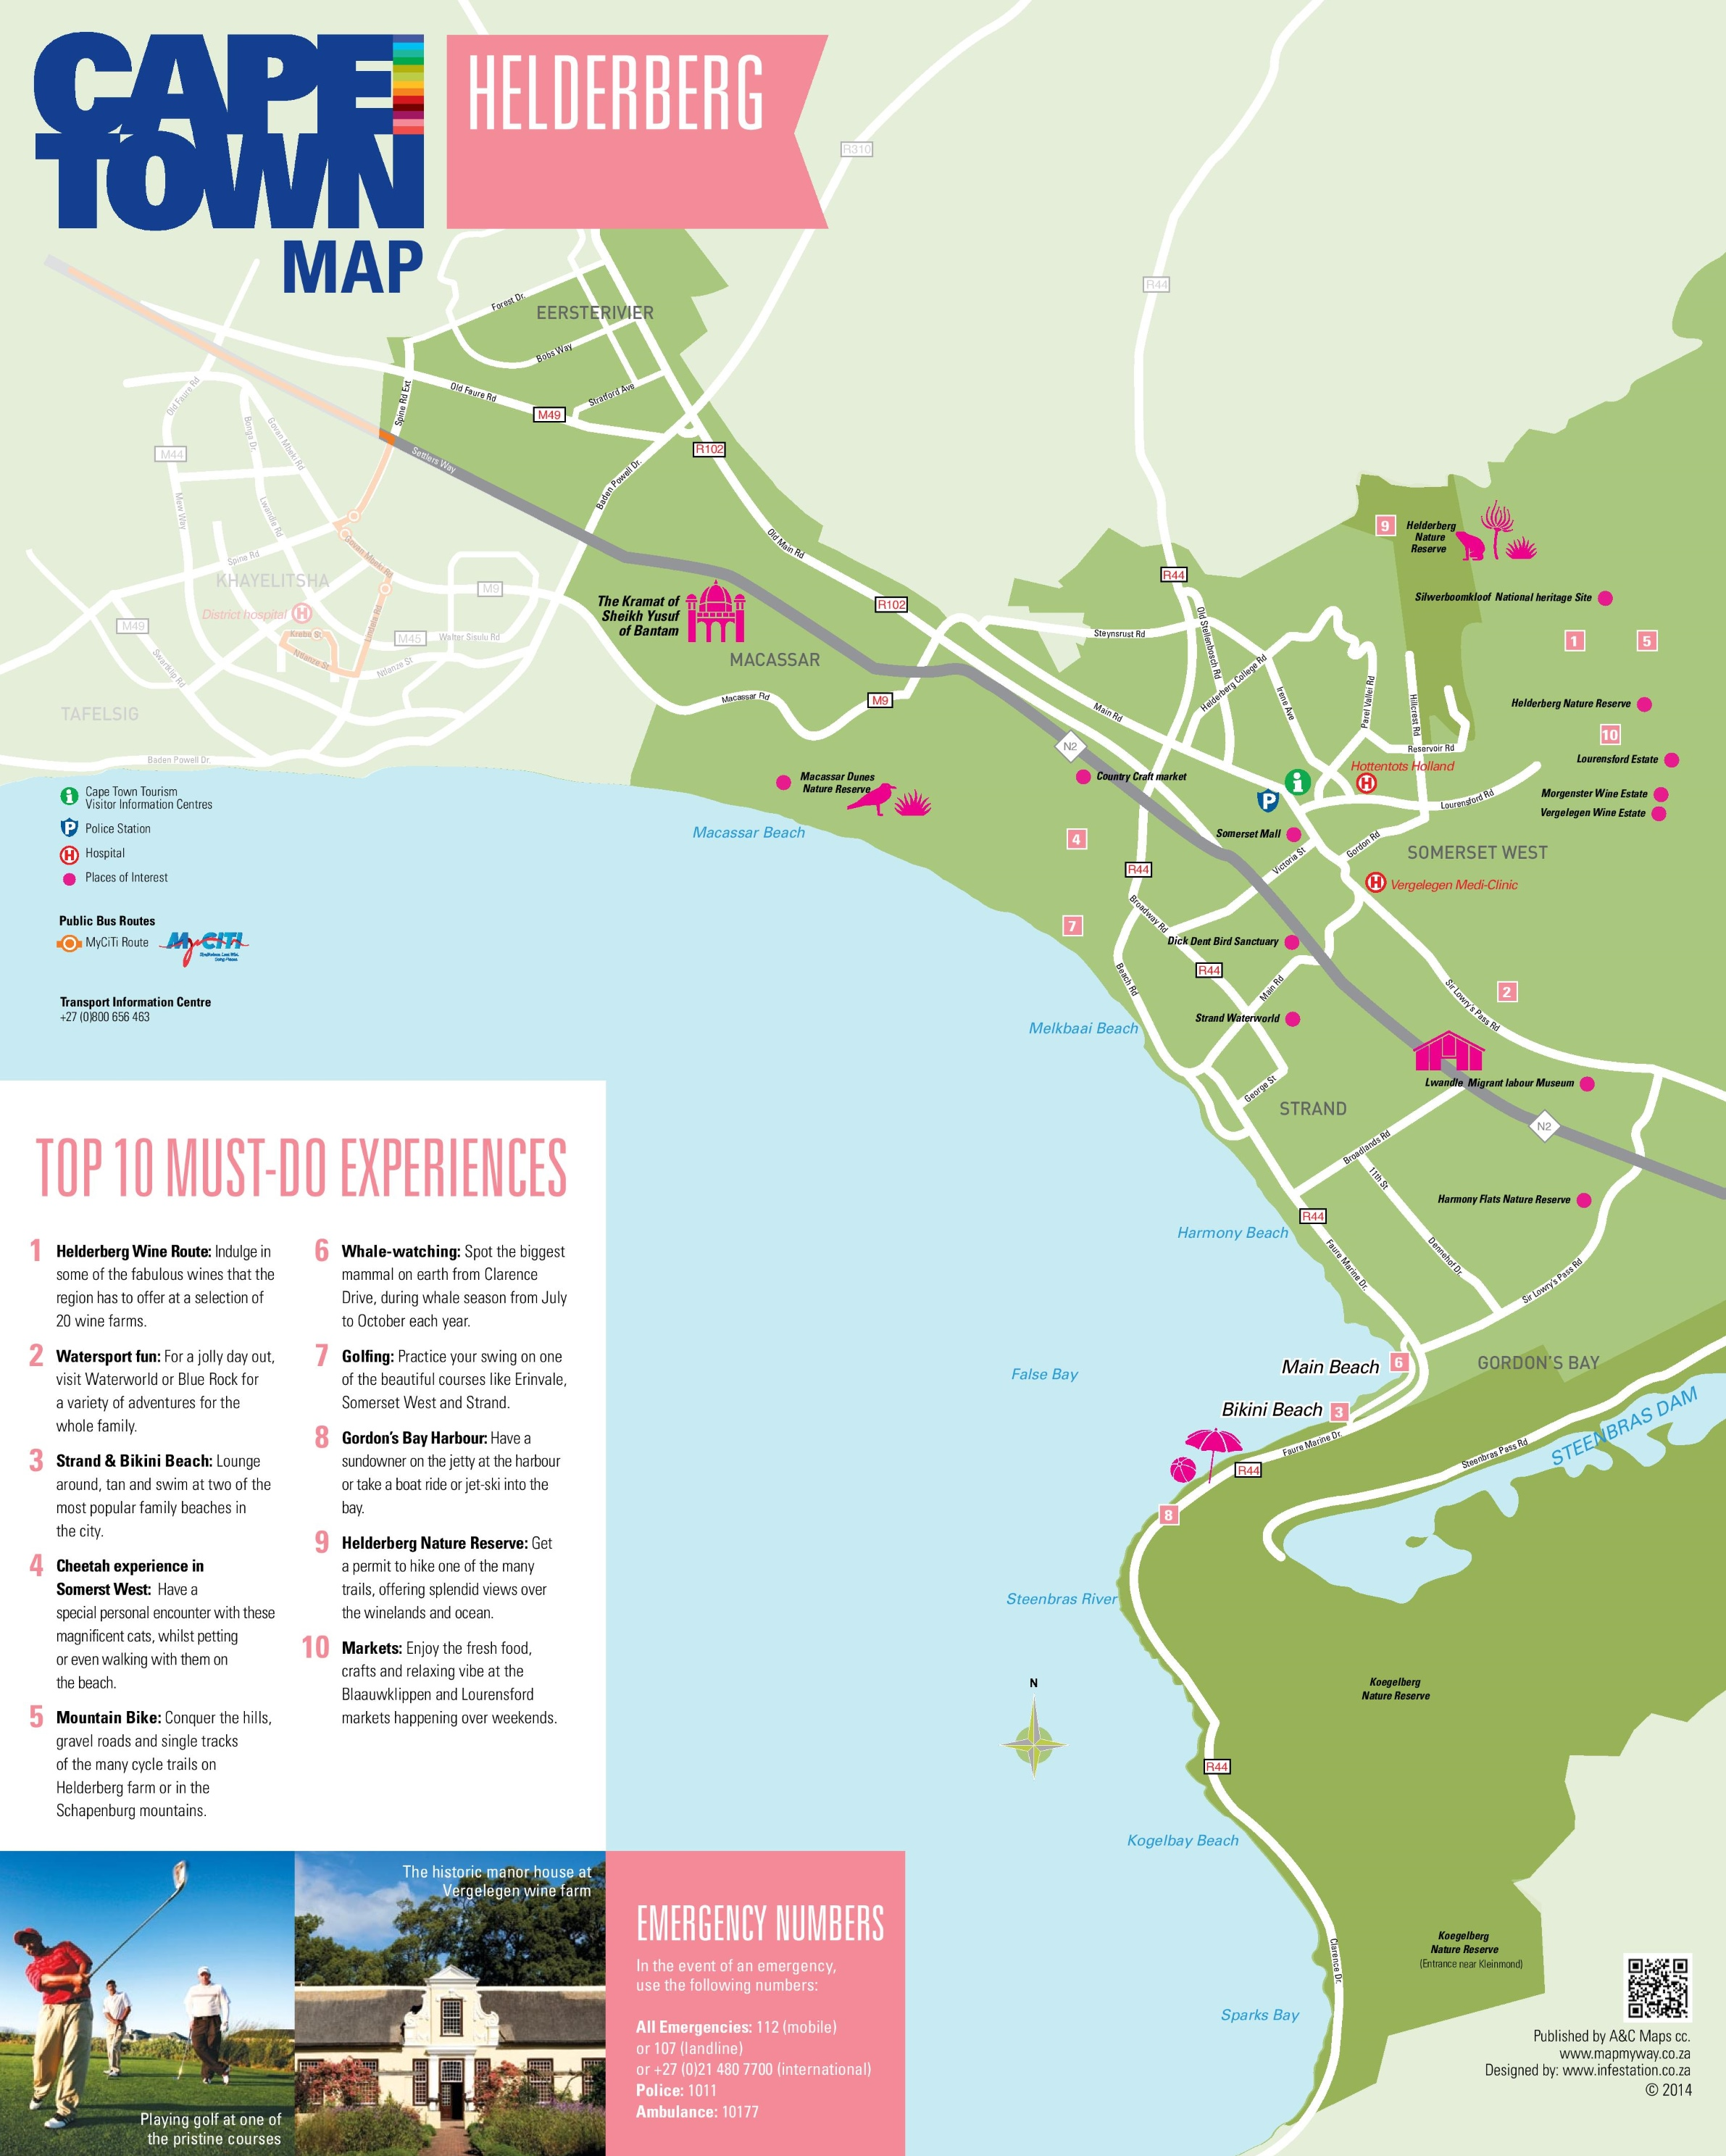 Helderberg map Cape Town